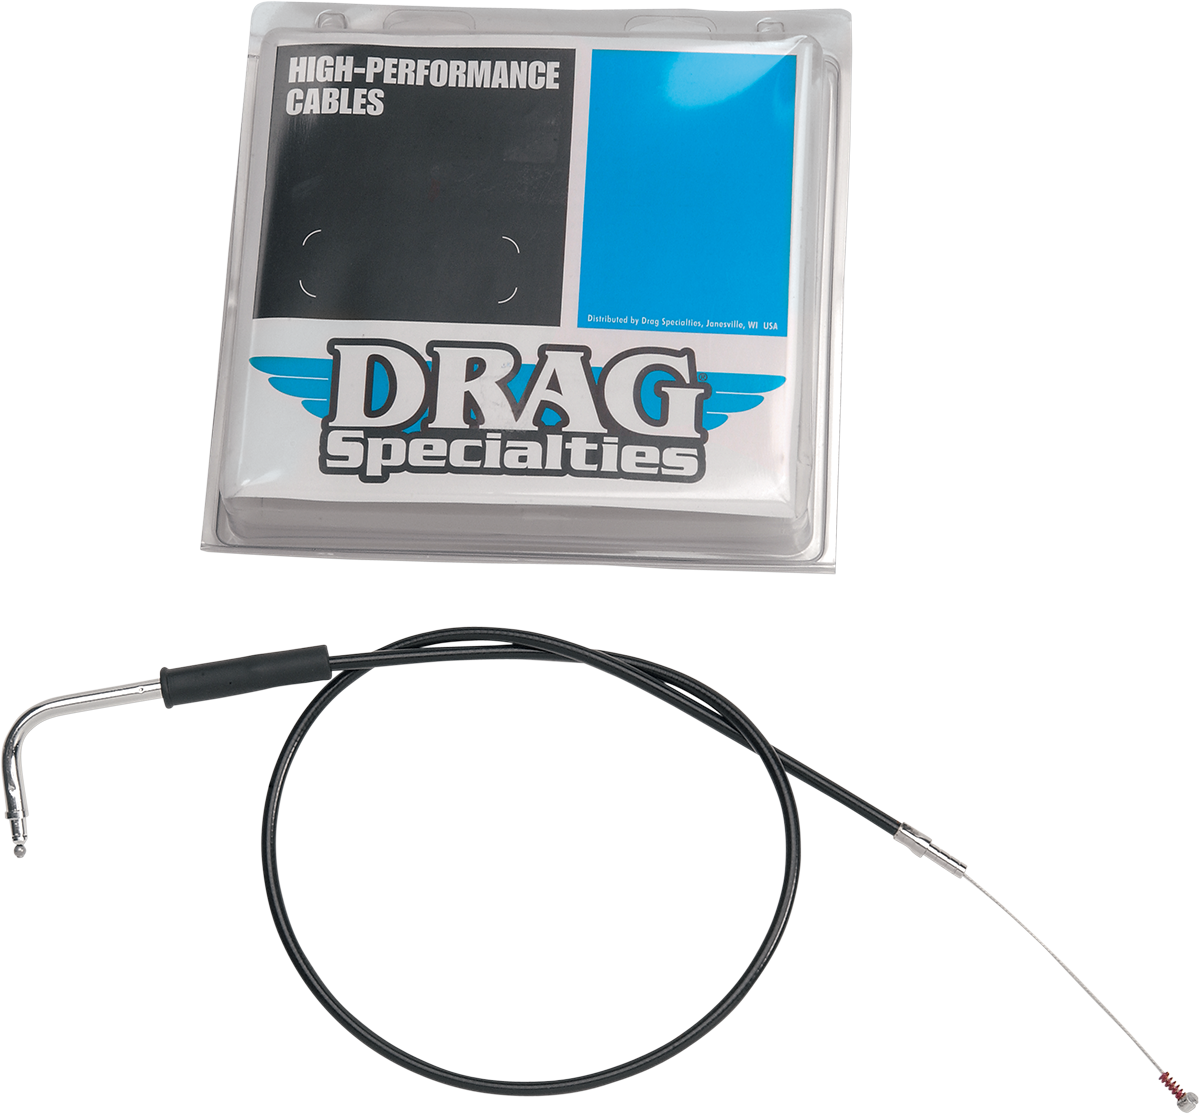 "Drag Specialties Black Vinyl Throttle Cable 42.5"" for 81-89 Harley Touring FLHT"